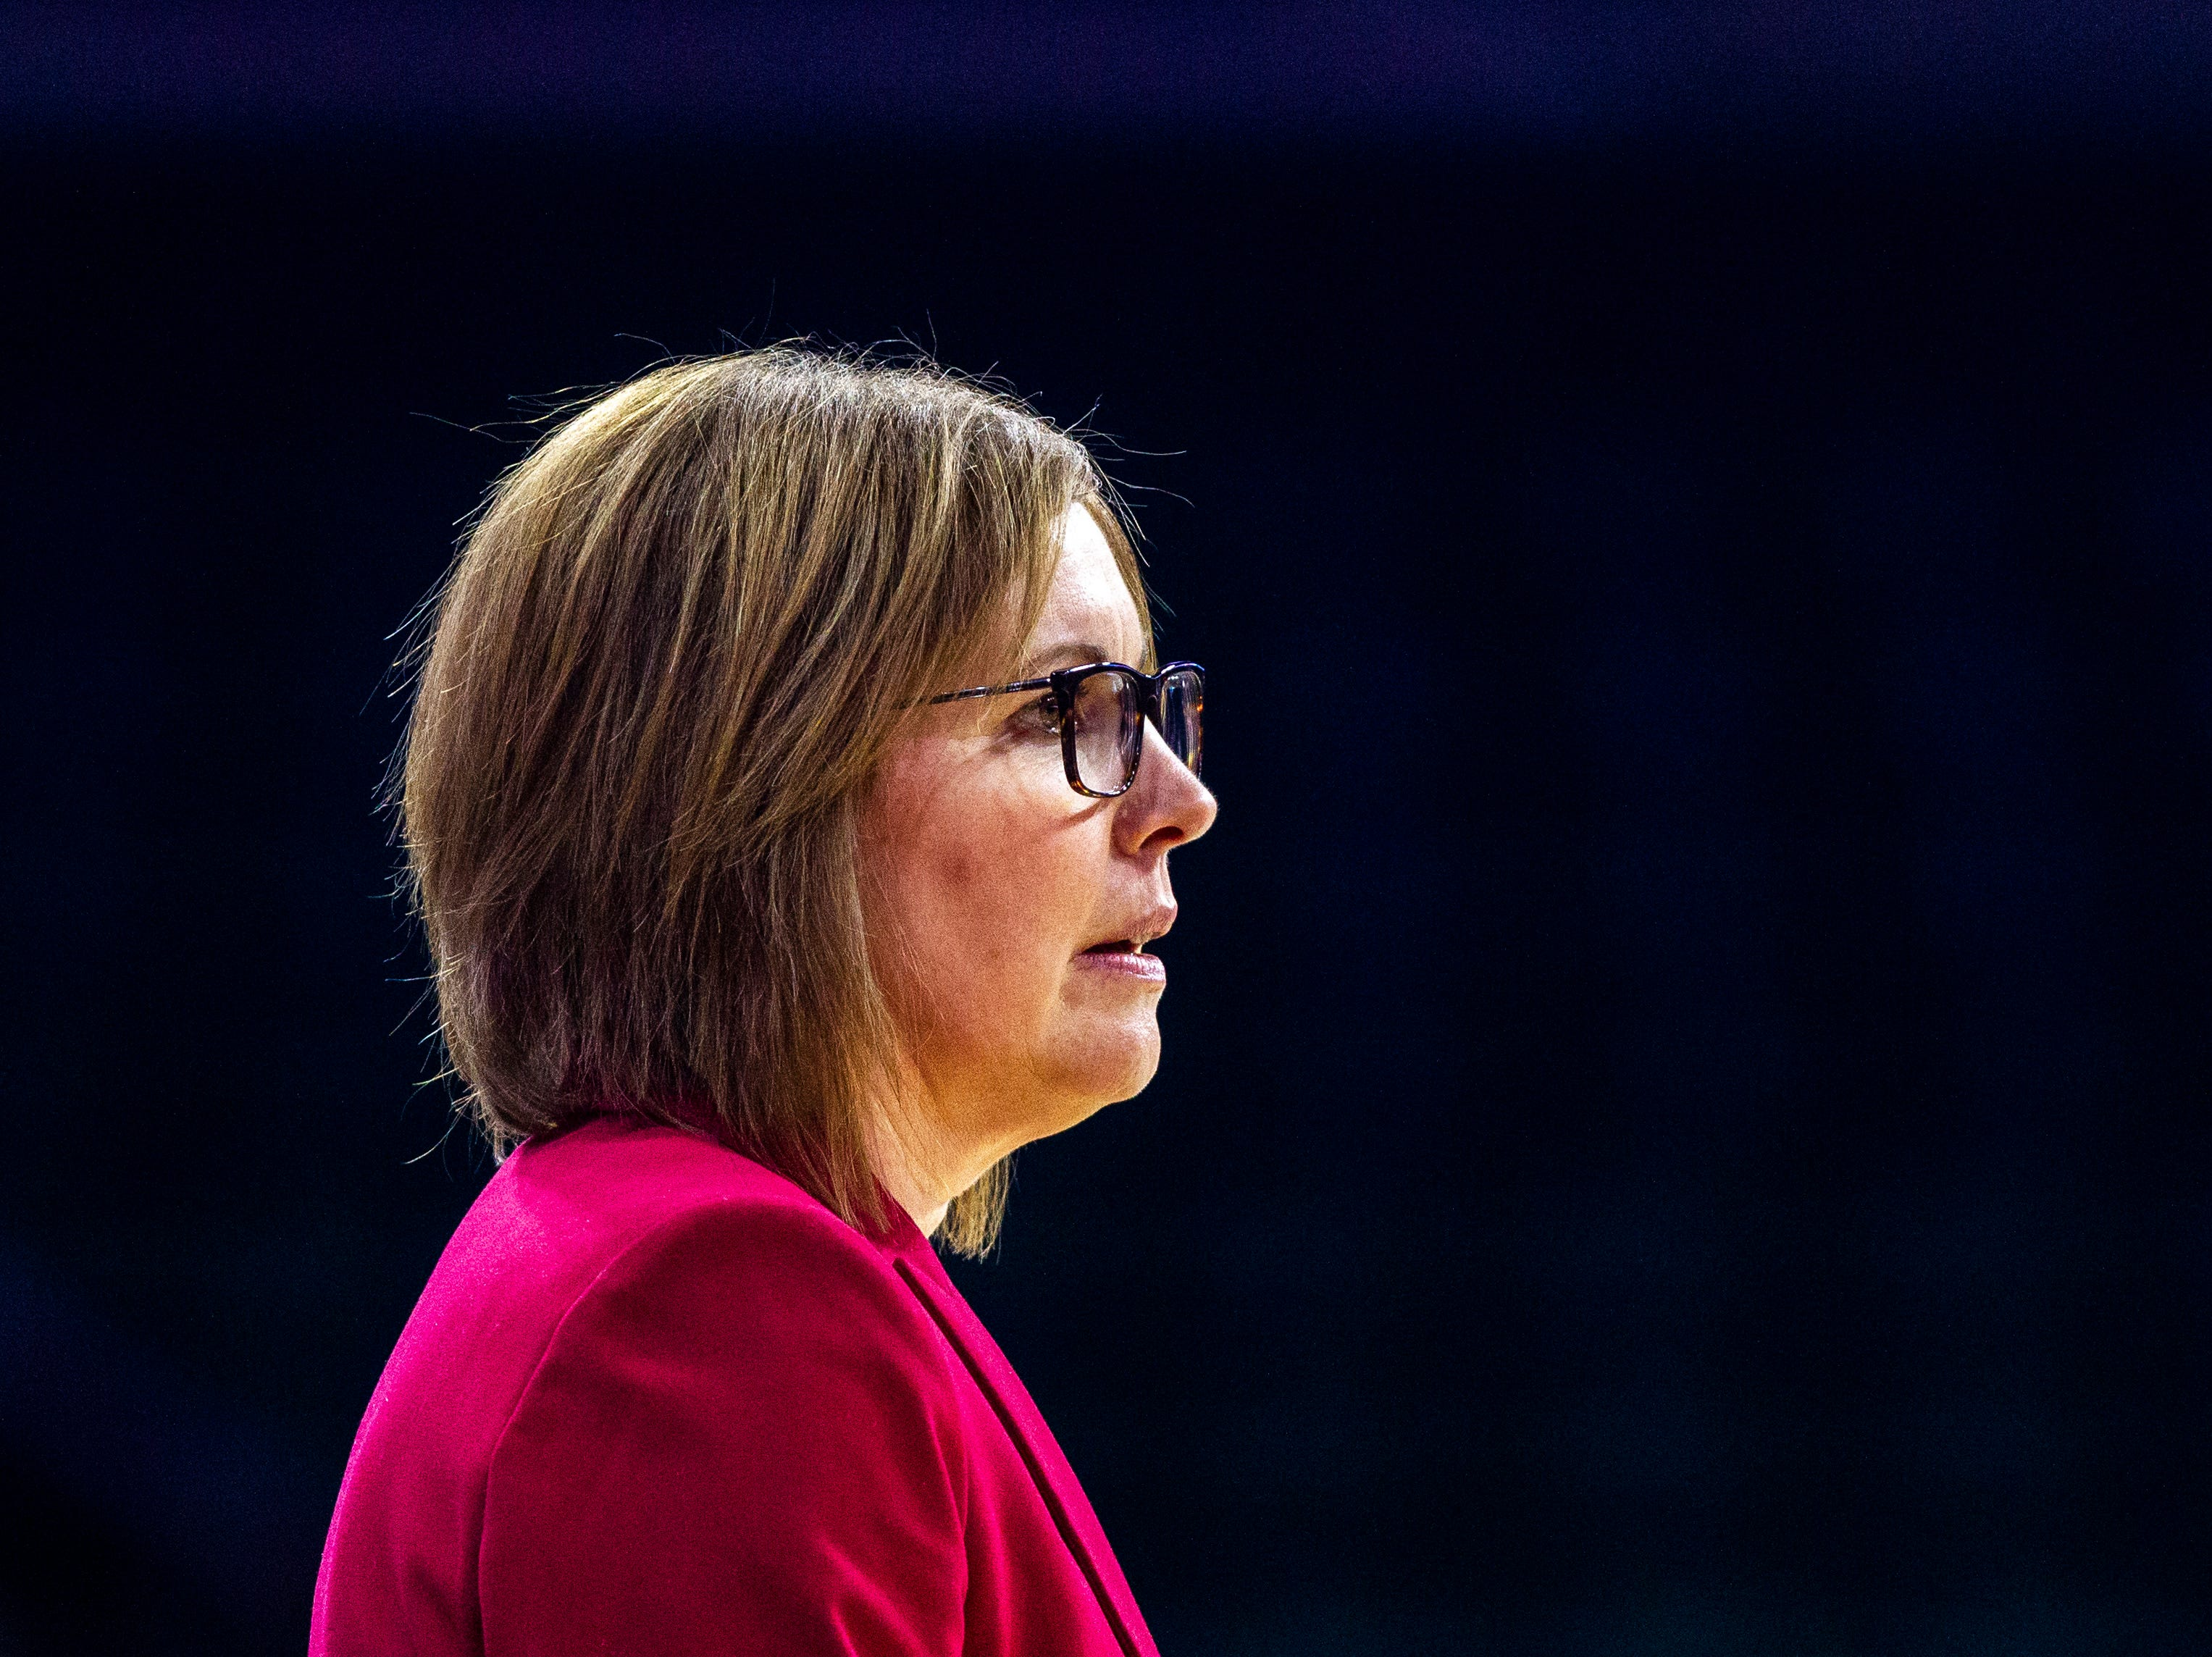 Bradley head coach Andrea Gorski looks on during a NCAA Missouri Valley Conference women's basketball quarterfinal tournament game, Friday, March 15, 2019, at the TaxSlayer Center in Moline, Illinois.